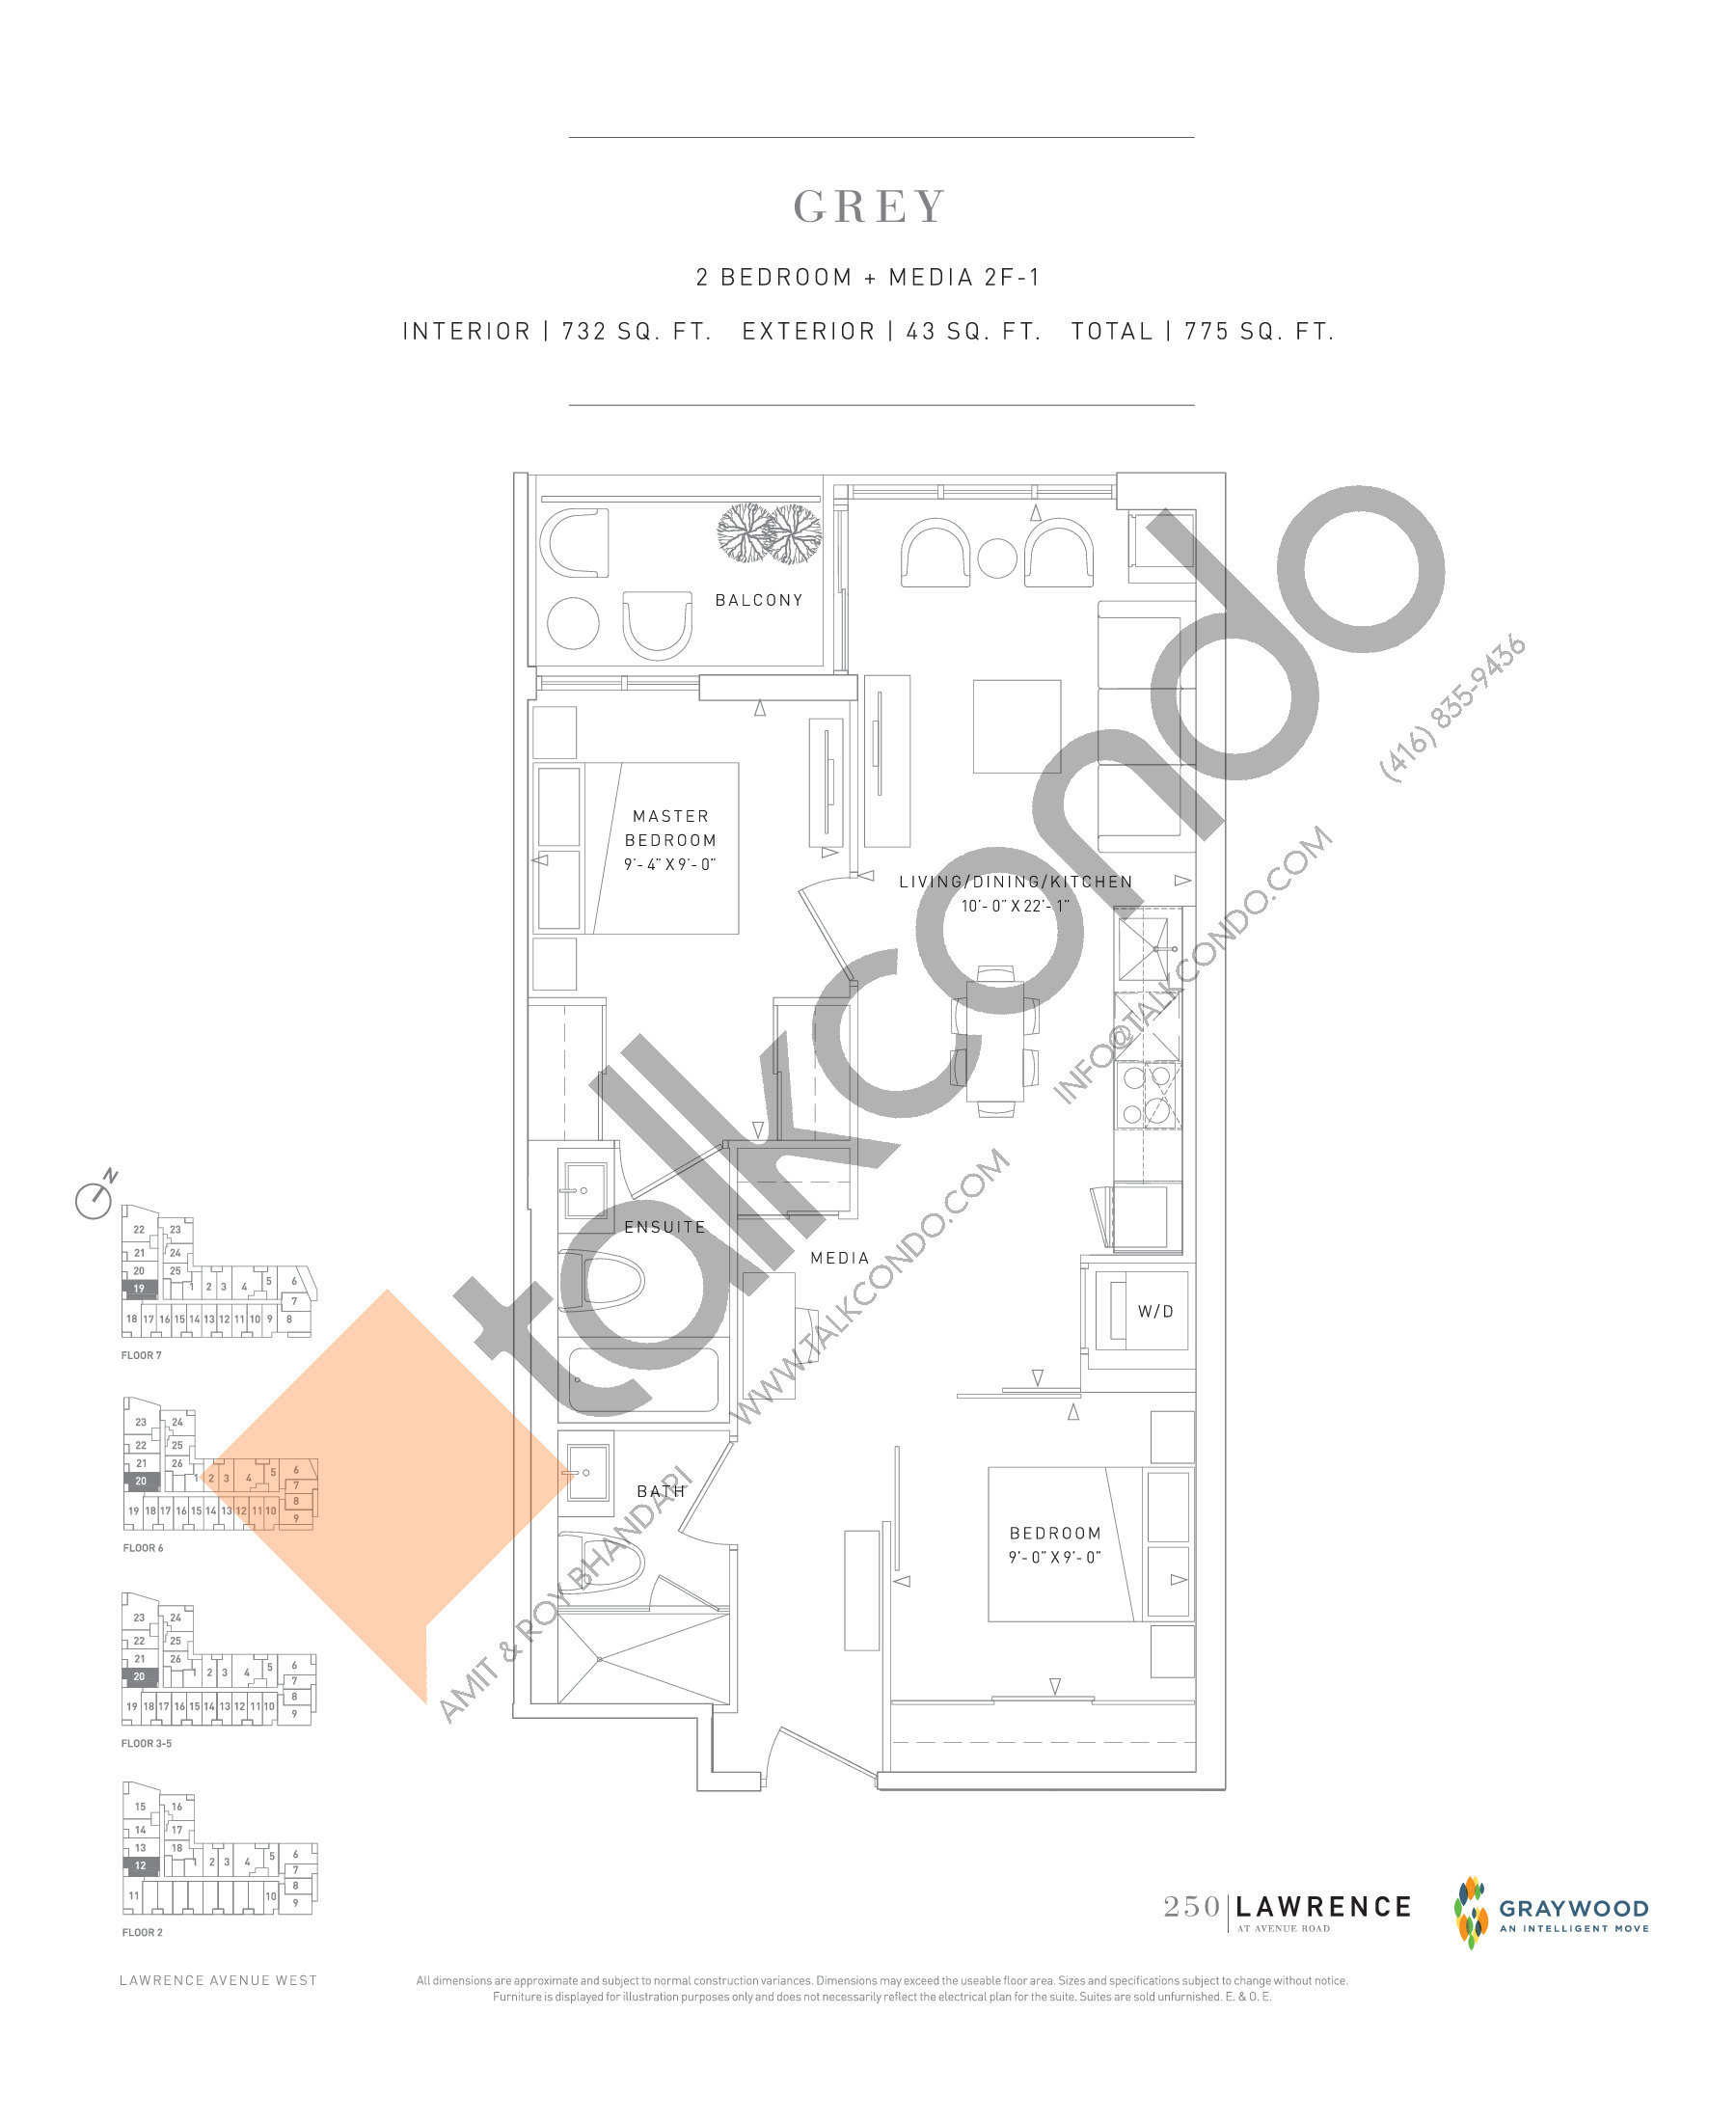 Grey Floor Plan at 250 Lawrence Avenue West Condos - 732 sq.ft